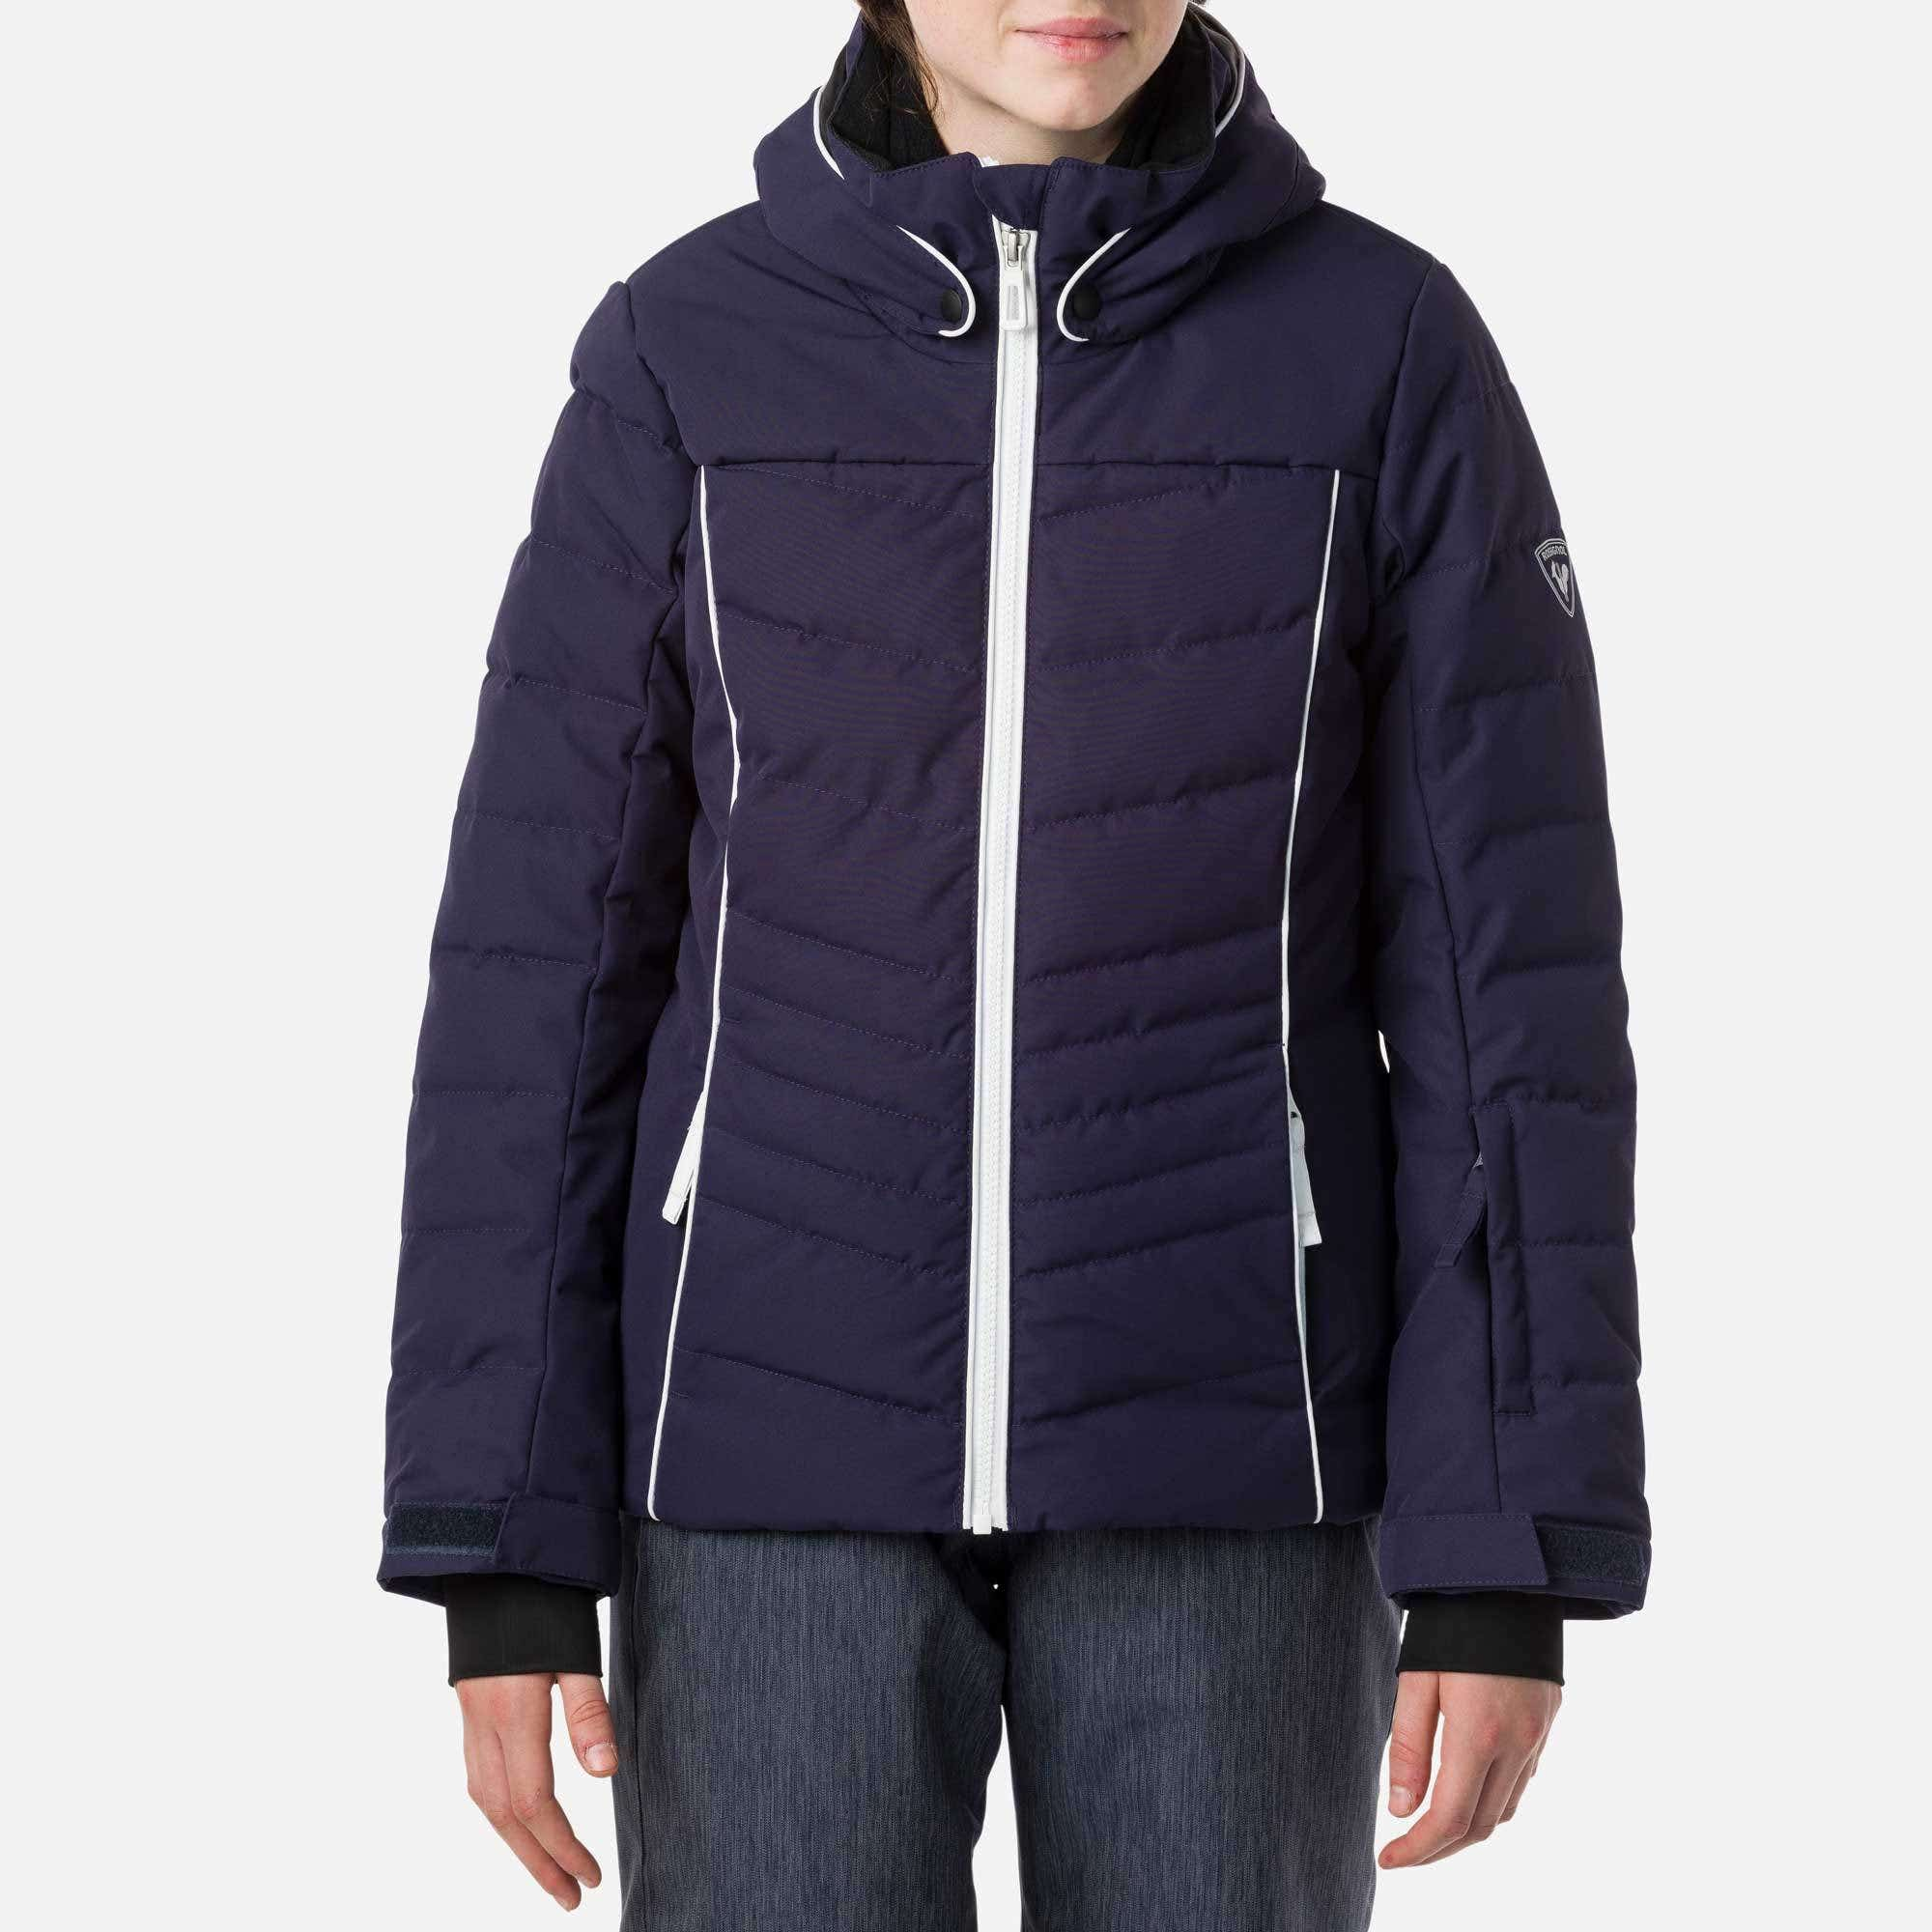 Image of Girl's Polydown Jacket